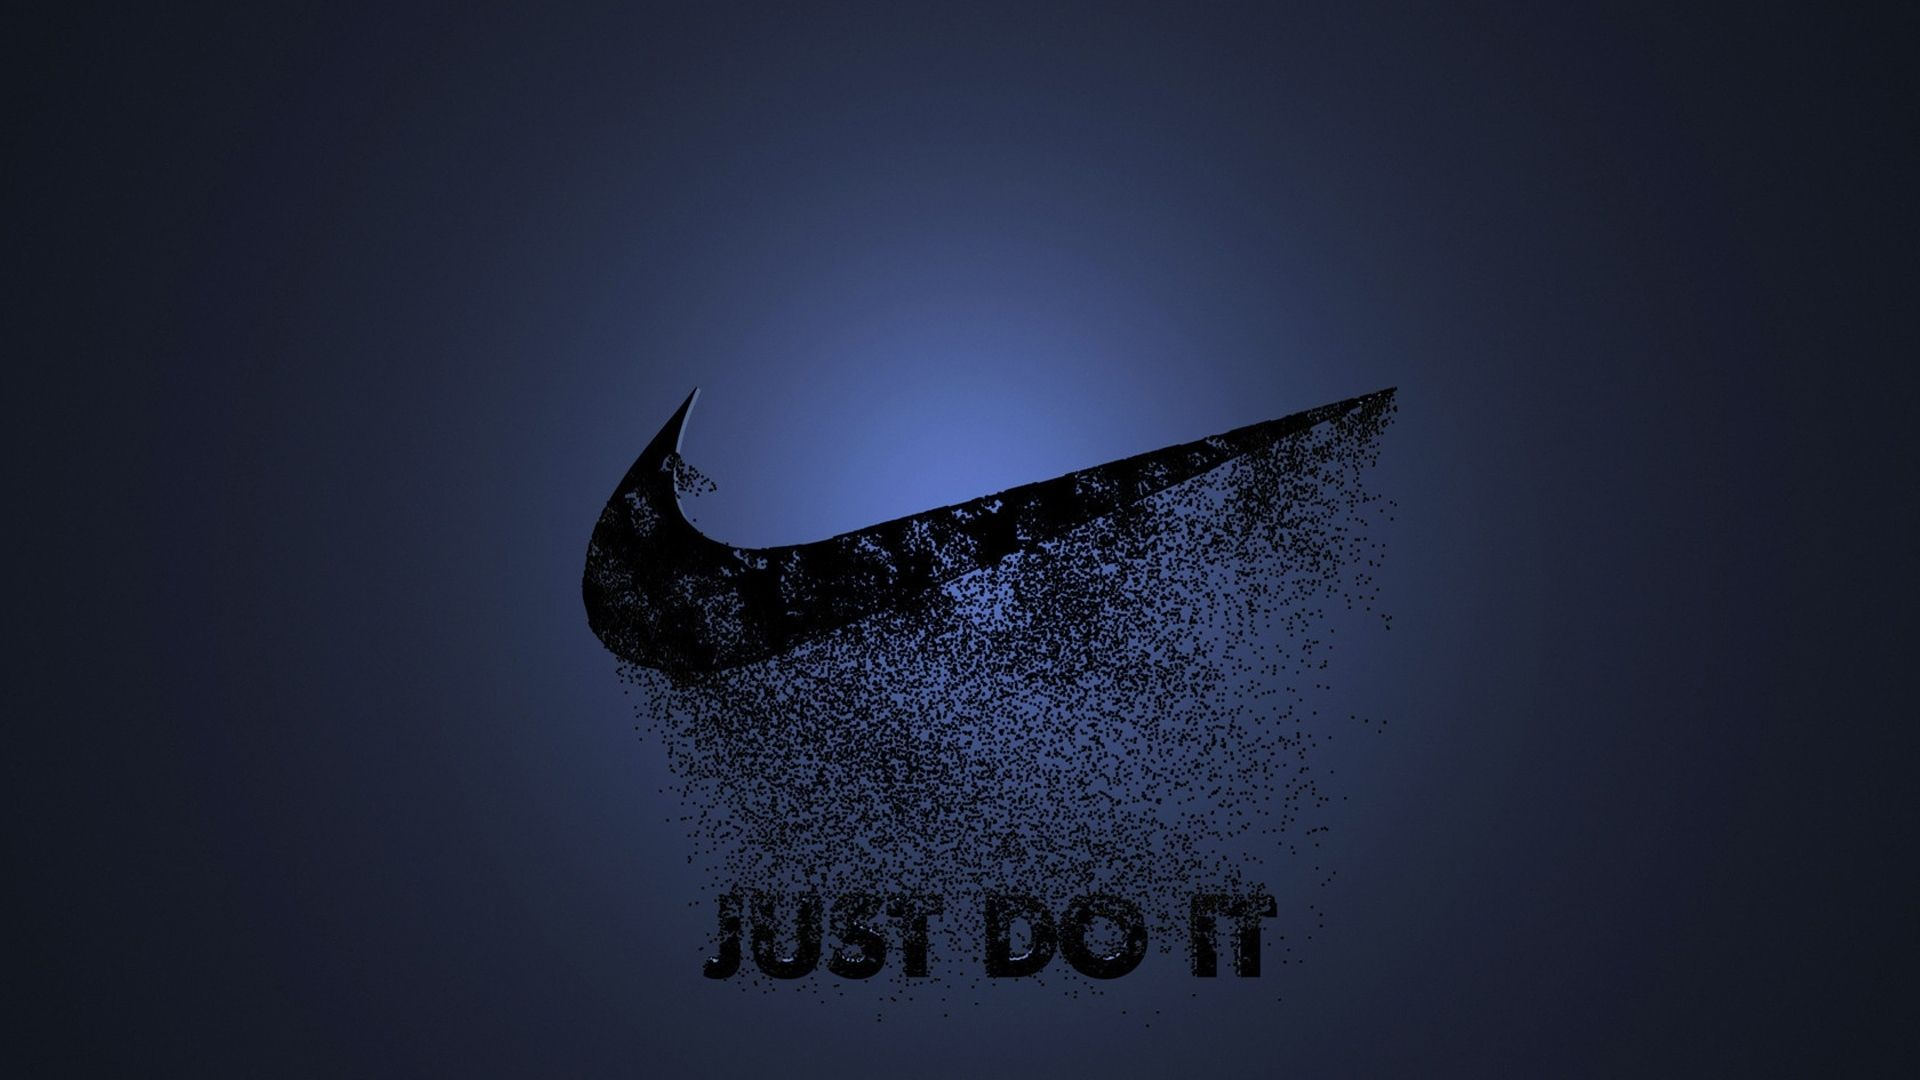 Nike Logo Slogan Sport Hd Wallpaper Nike Wallpaper Nike Logo Wallpapers Nike Background